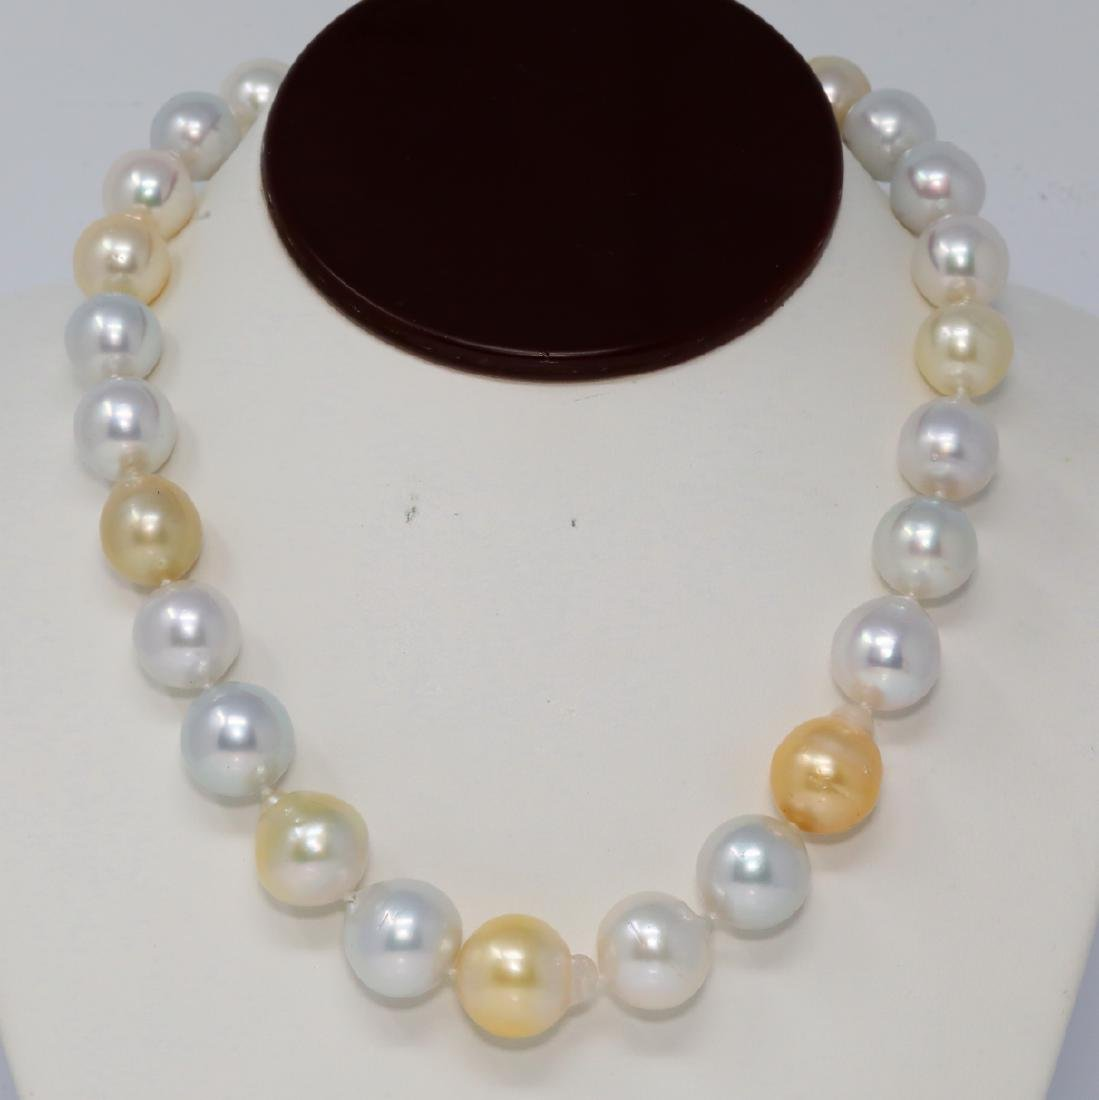 13mm-17mm White & Golden South Sea Pearl Necklace